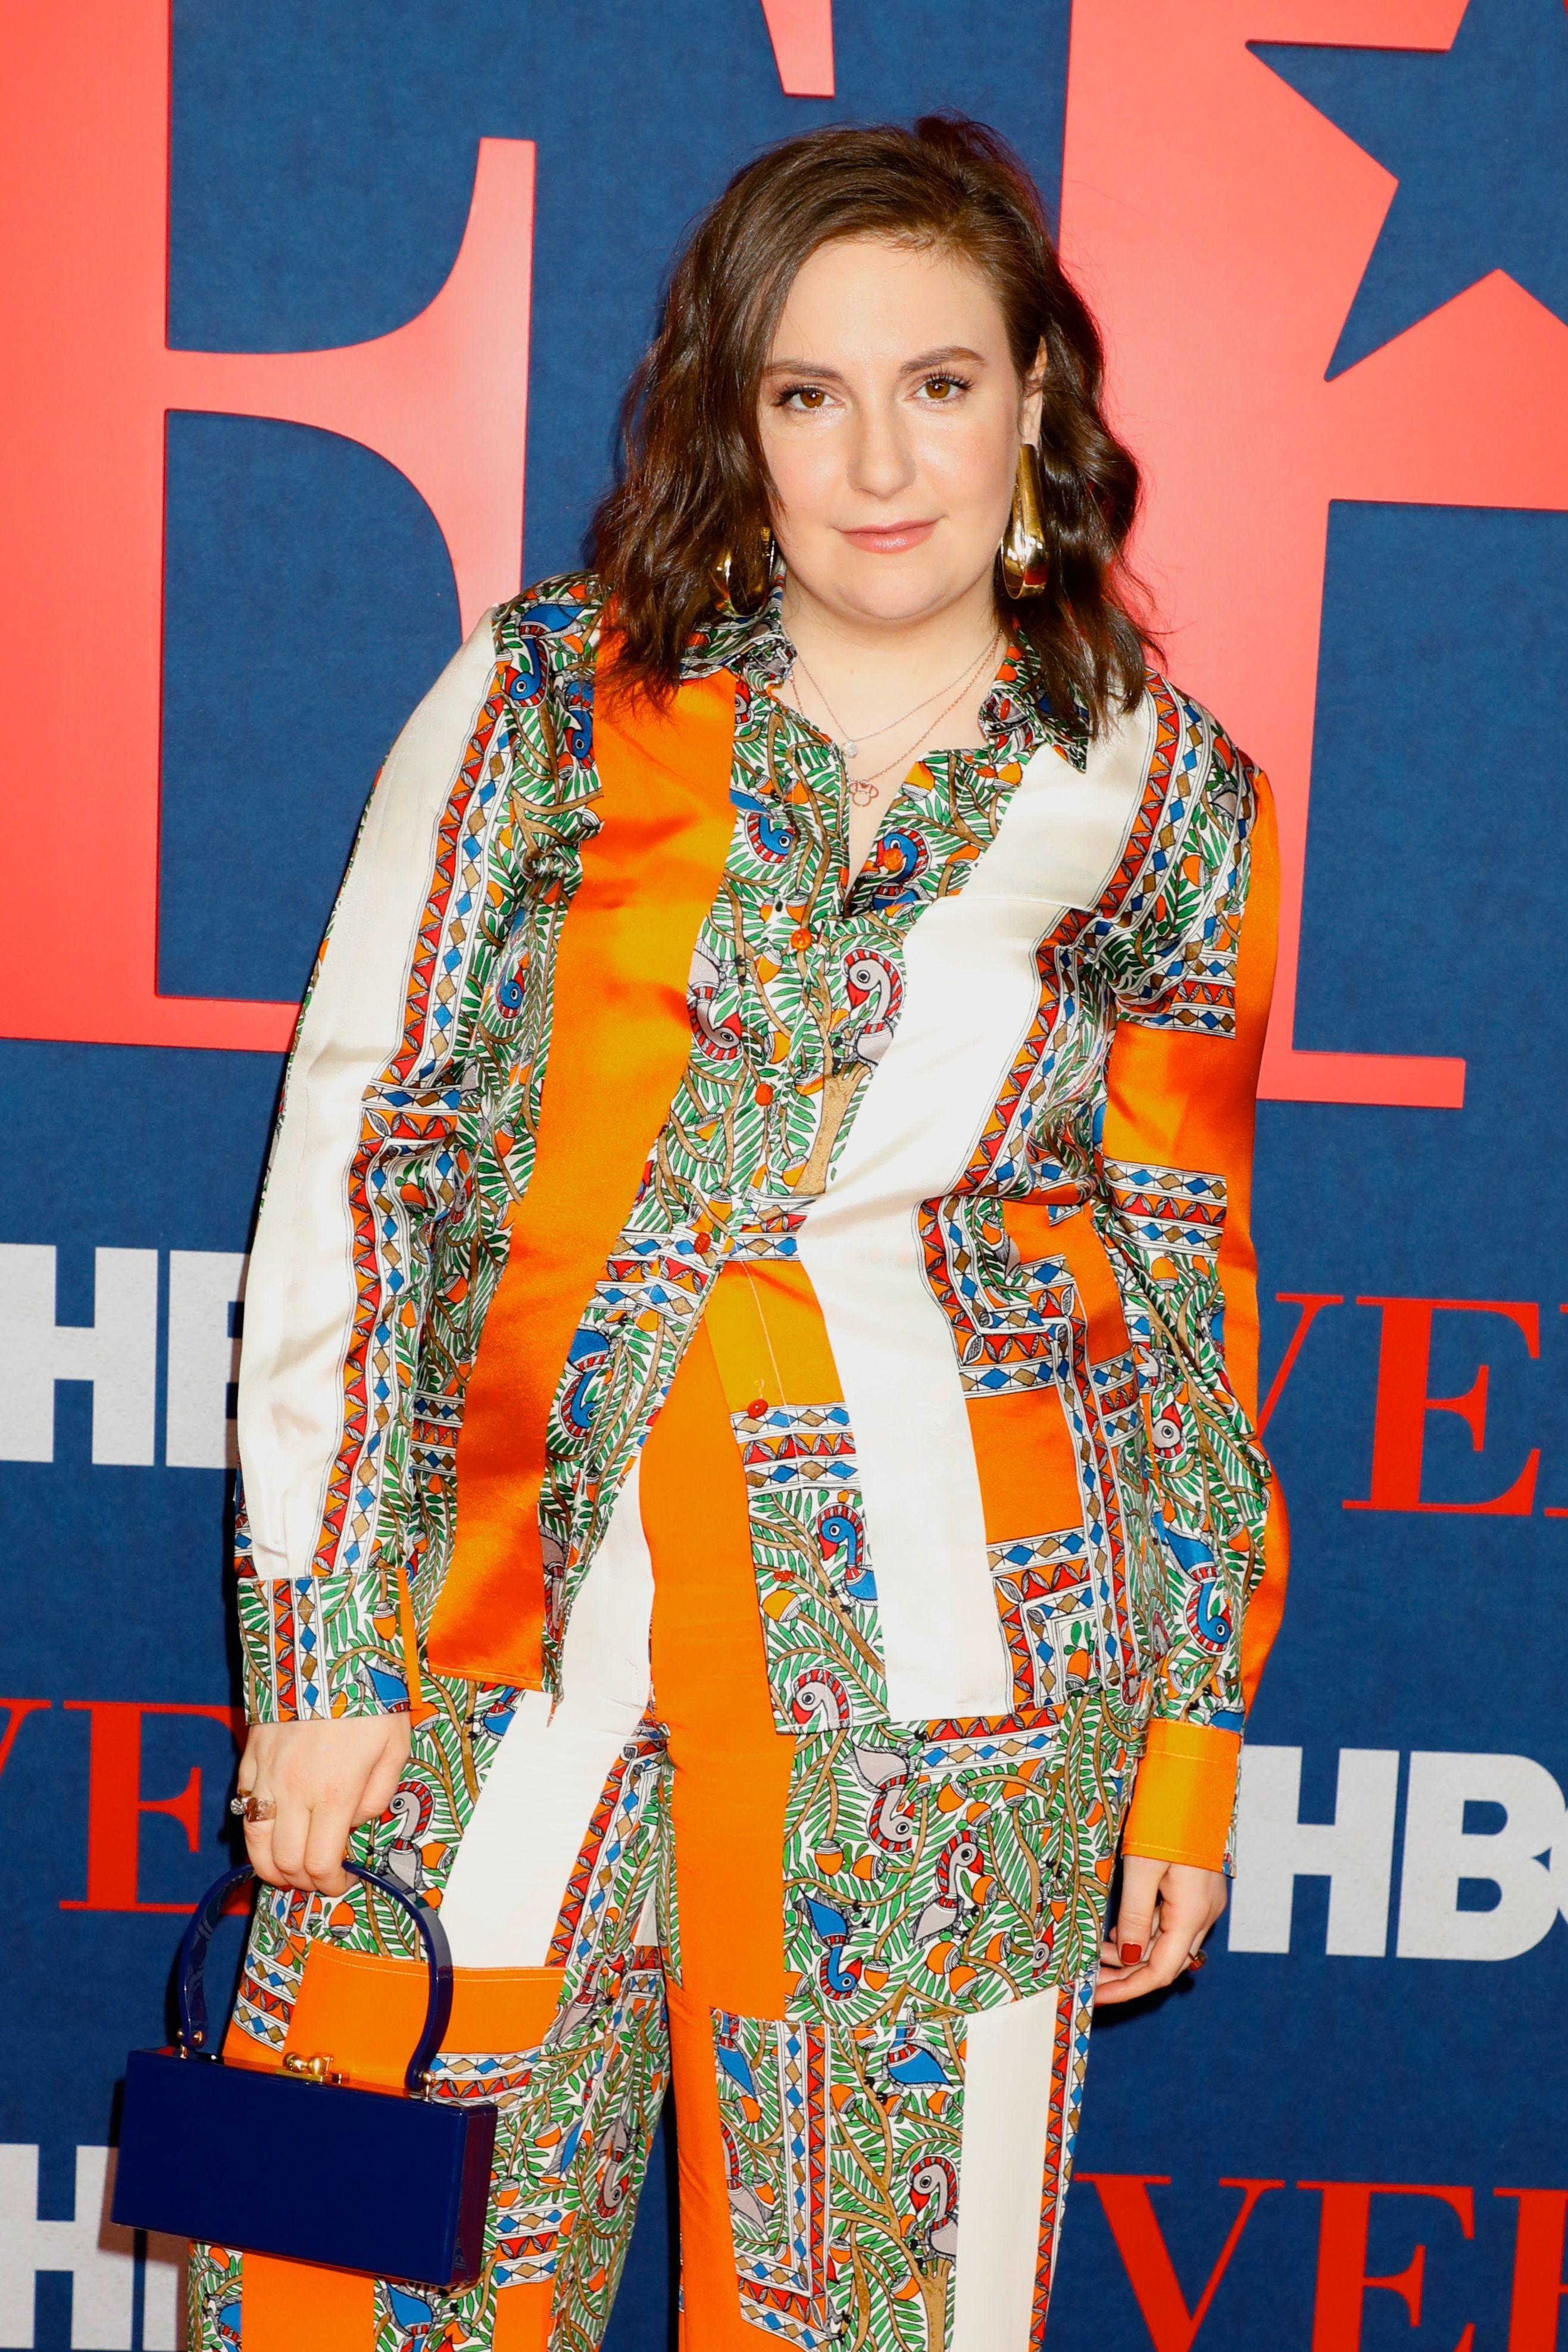 """Lena Dunham arrives at the """"Veep"""" final season premiere in New York City on March 26, 2019."""